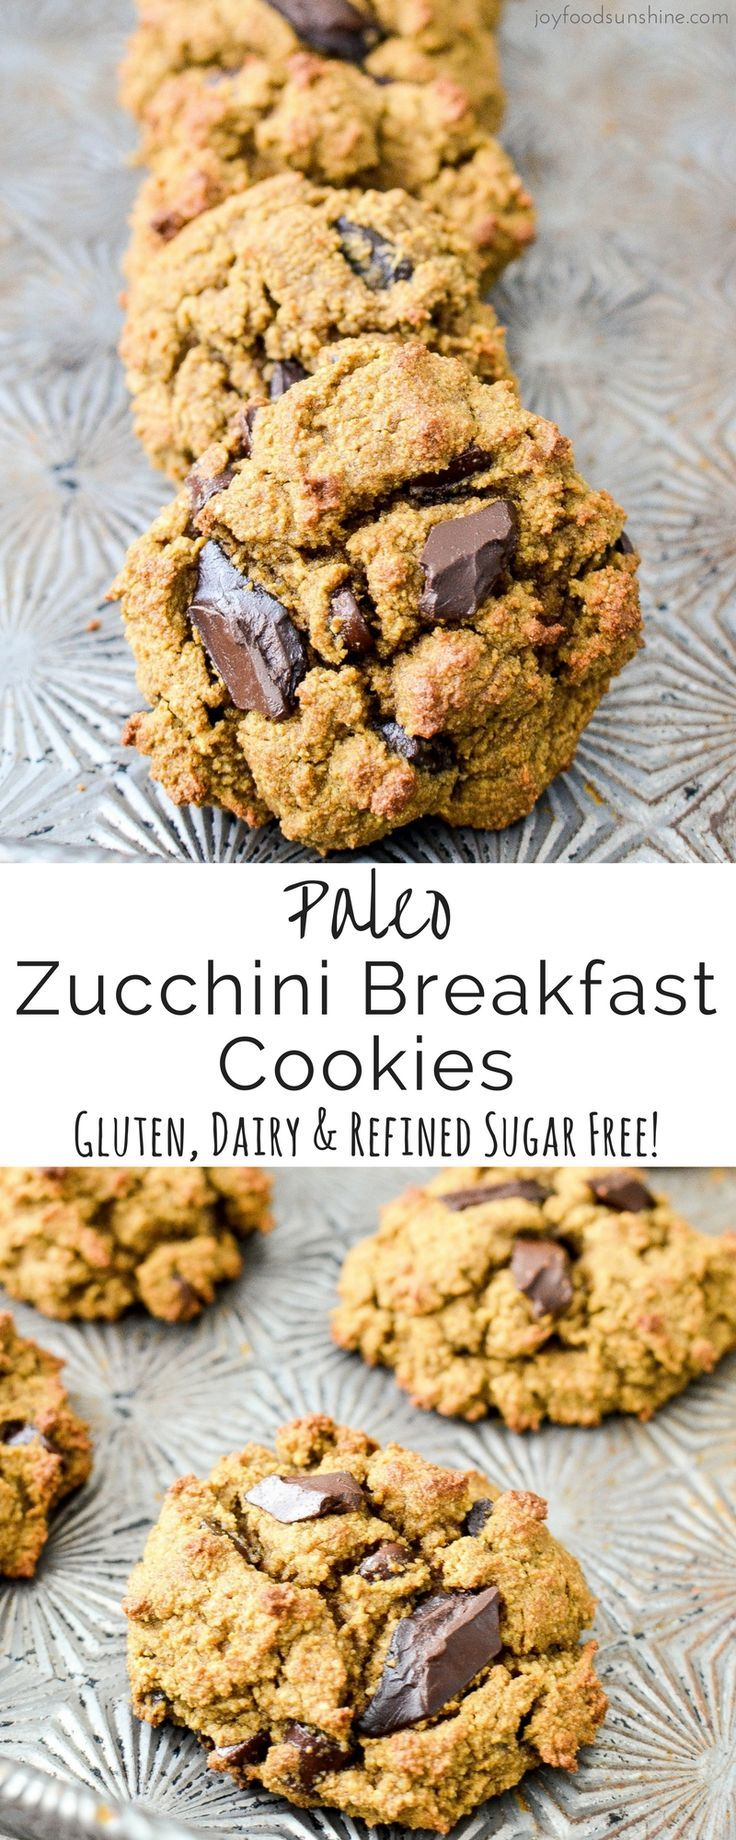 Paleo Zucchini Breakfast Cookies A Healthy And Nutritious Breakfast